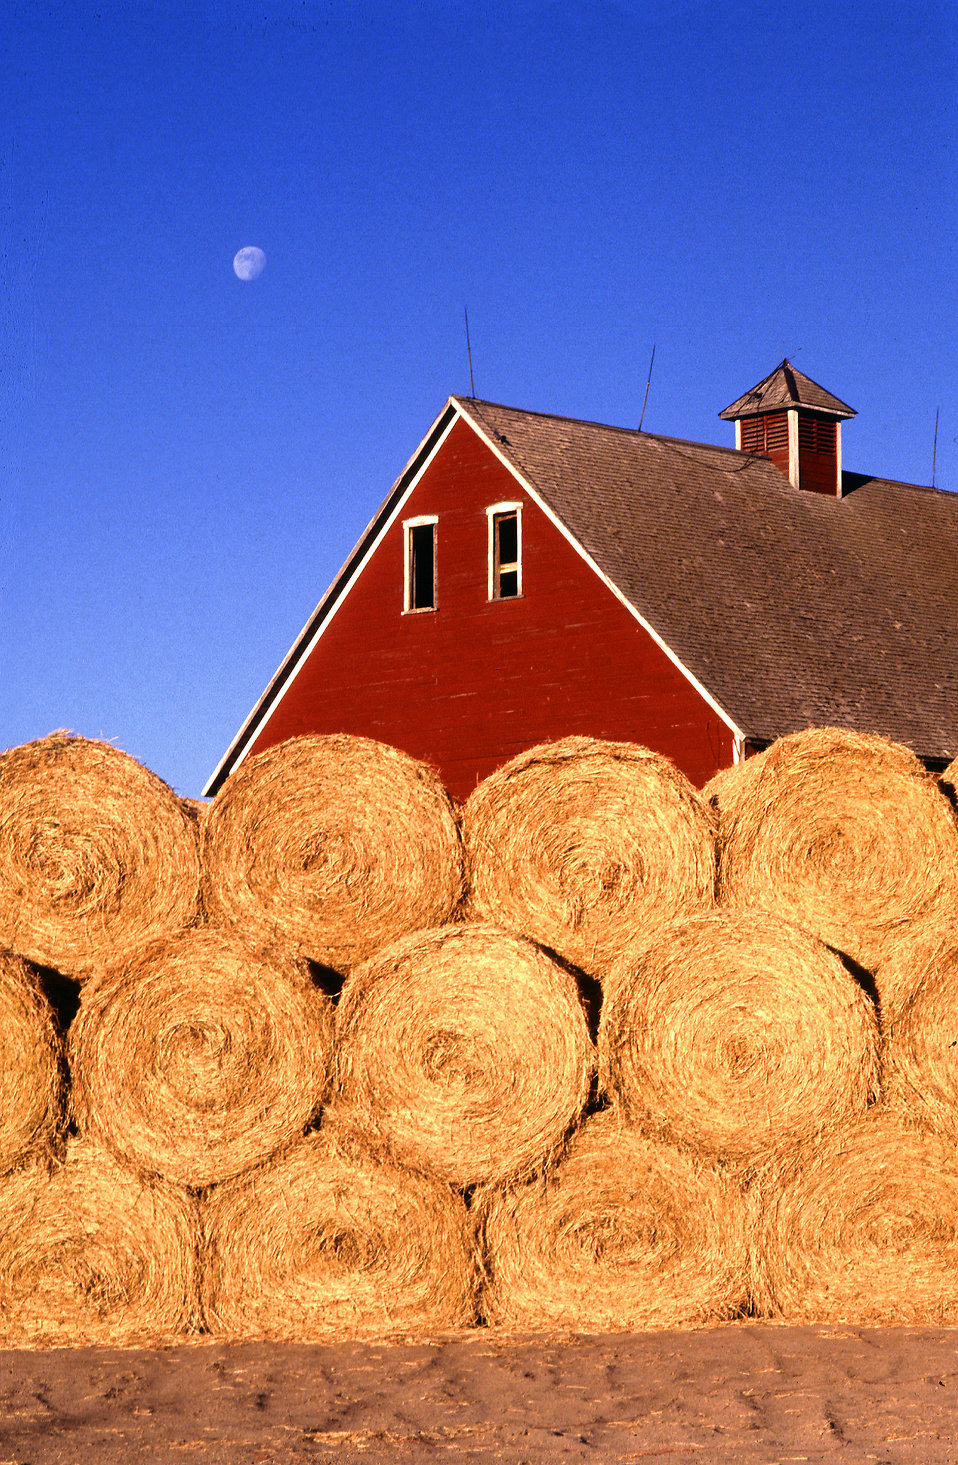 Bales of hay stacked outside a barn : Free Stock Photo